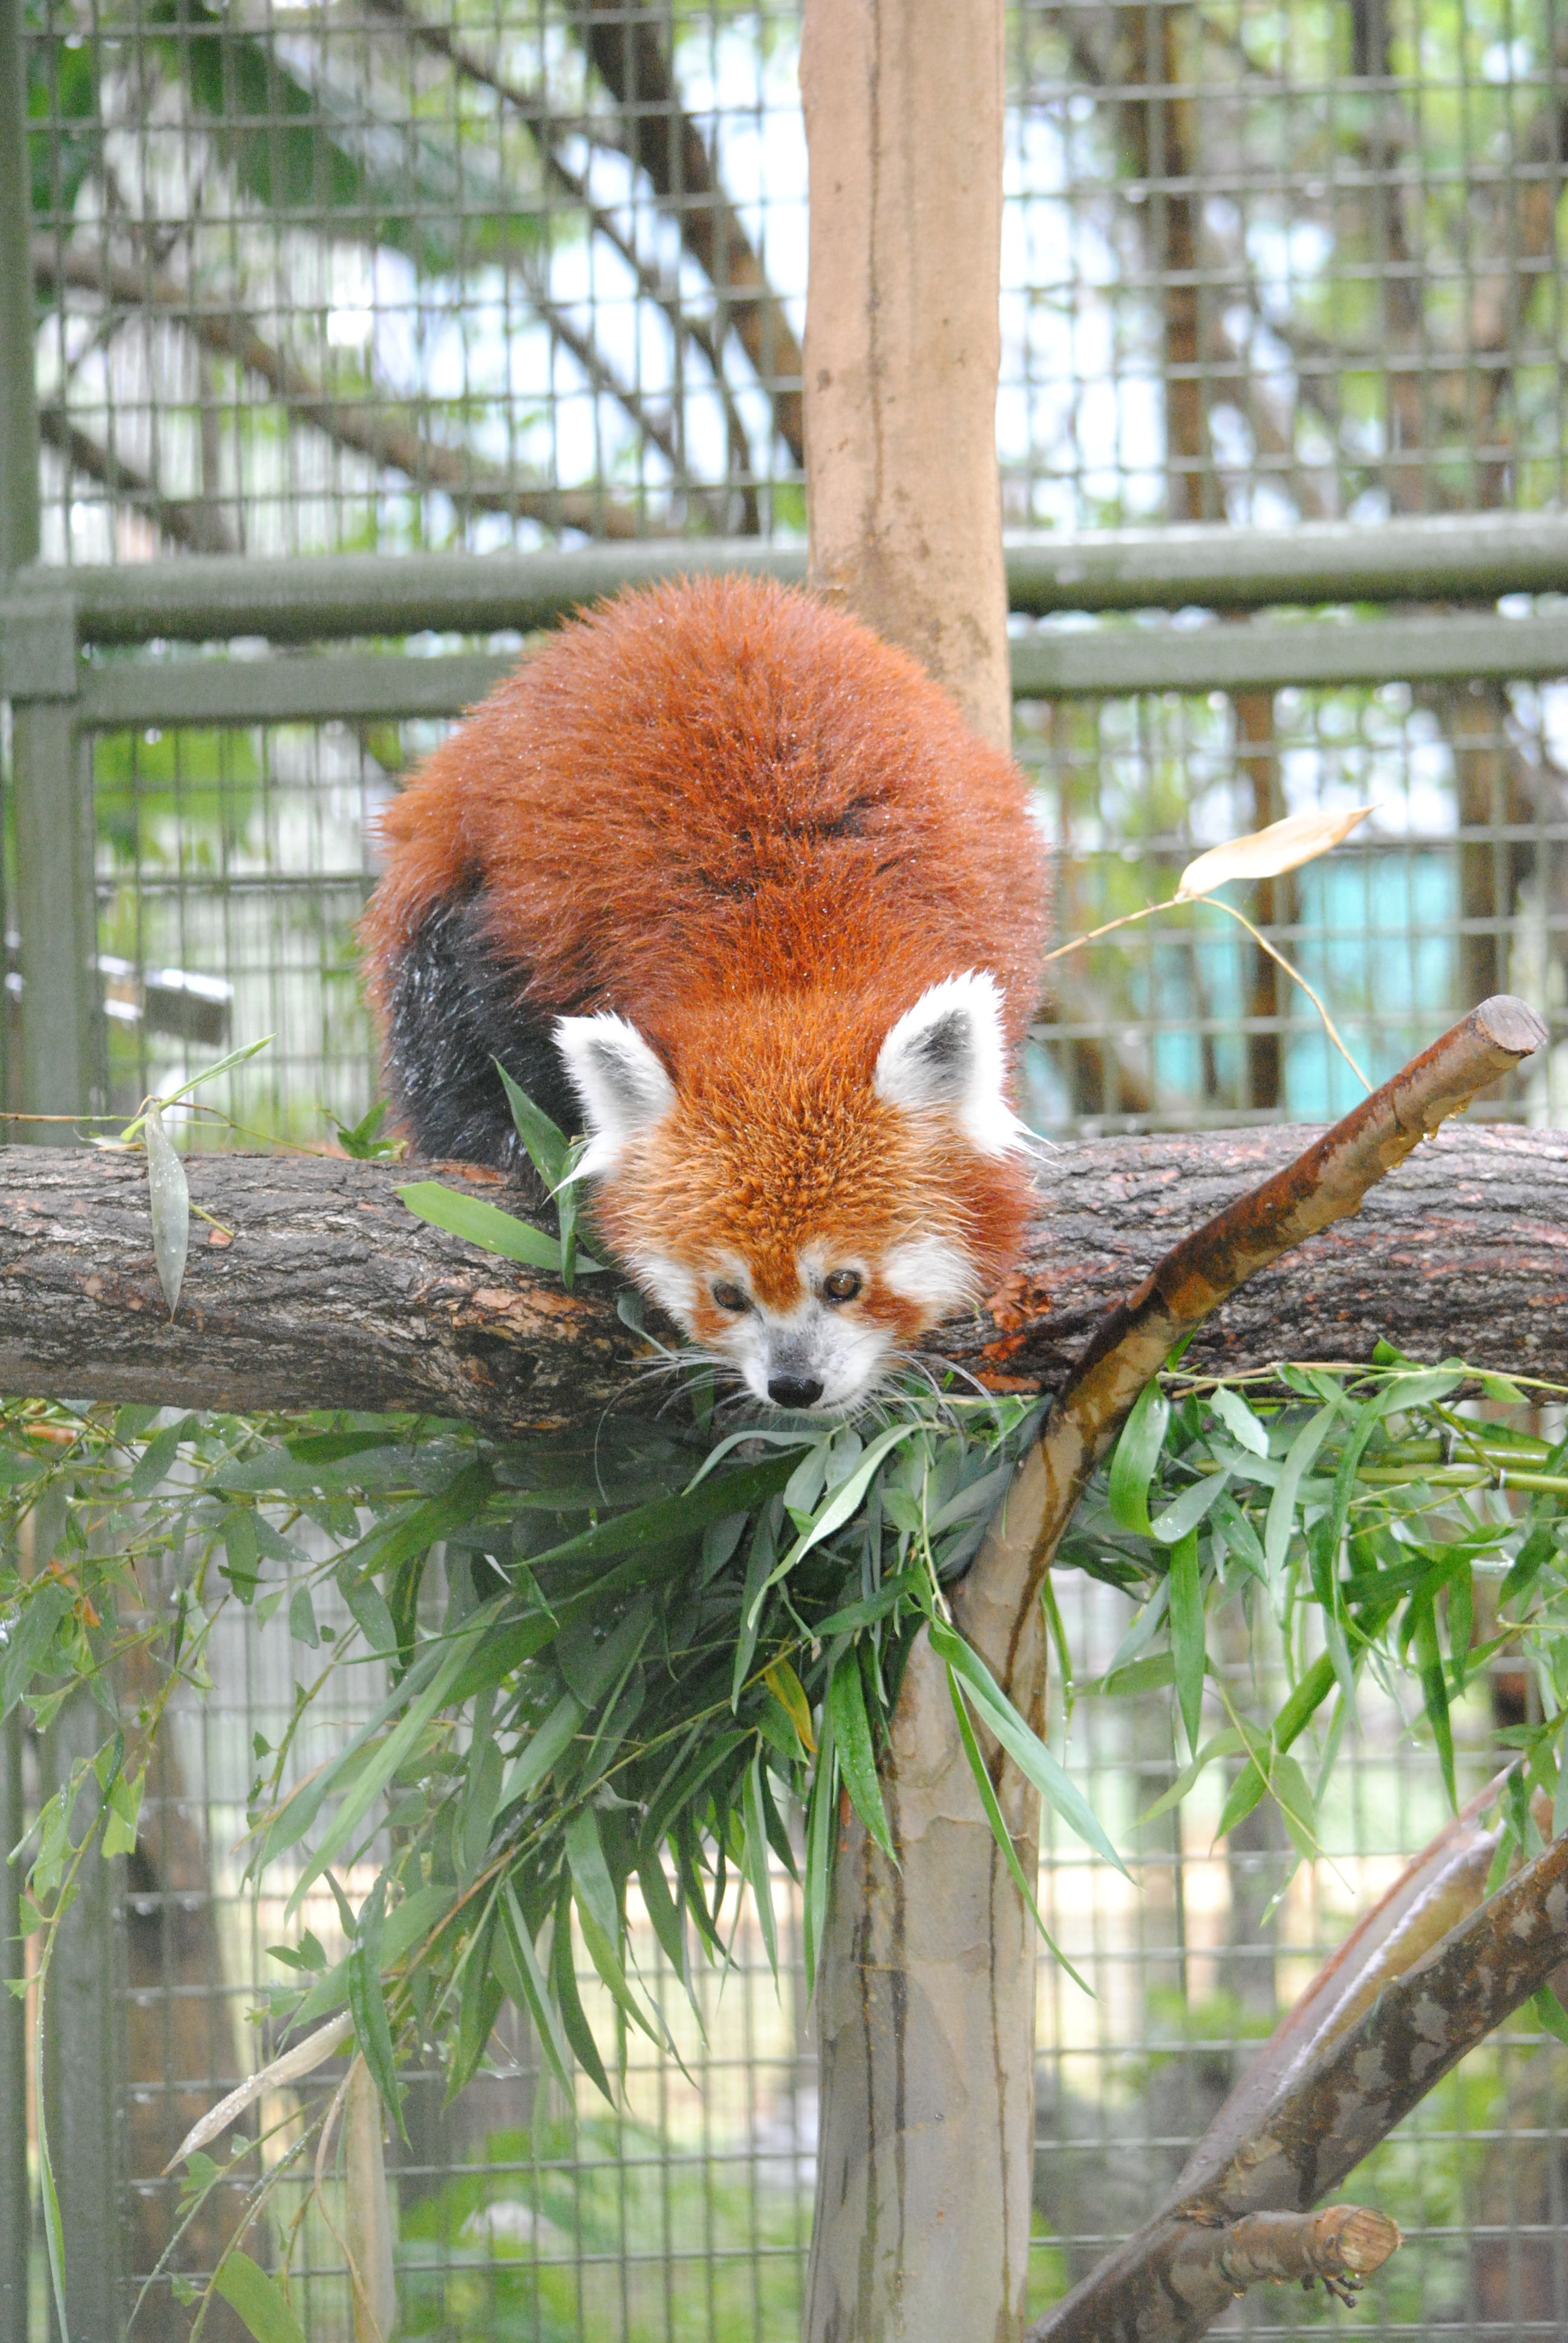 Mesker Park Zoo And Botanic Garden Welcomes A Red Panda With